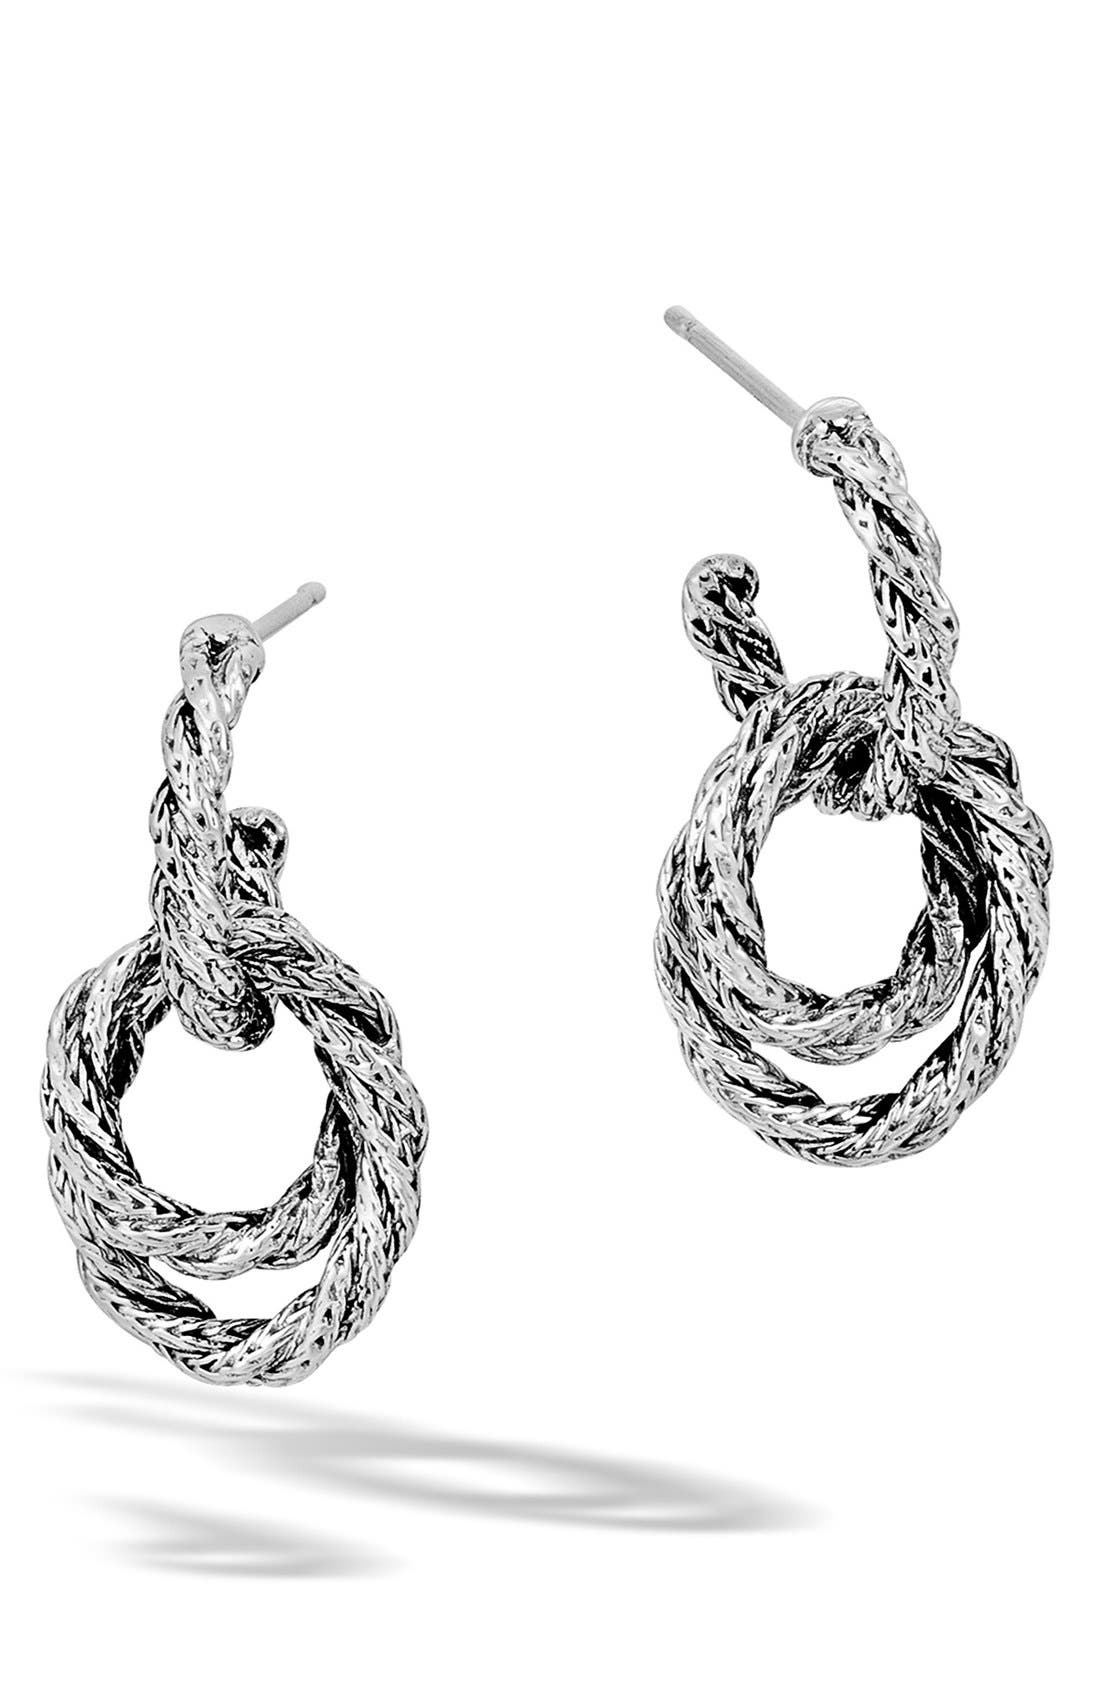 JOHN HARDY Classic Chain Double Twisted Hoop Earrings